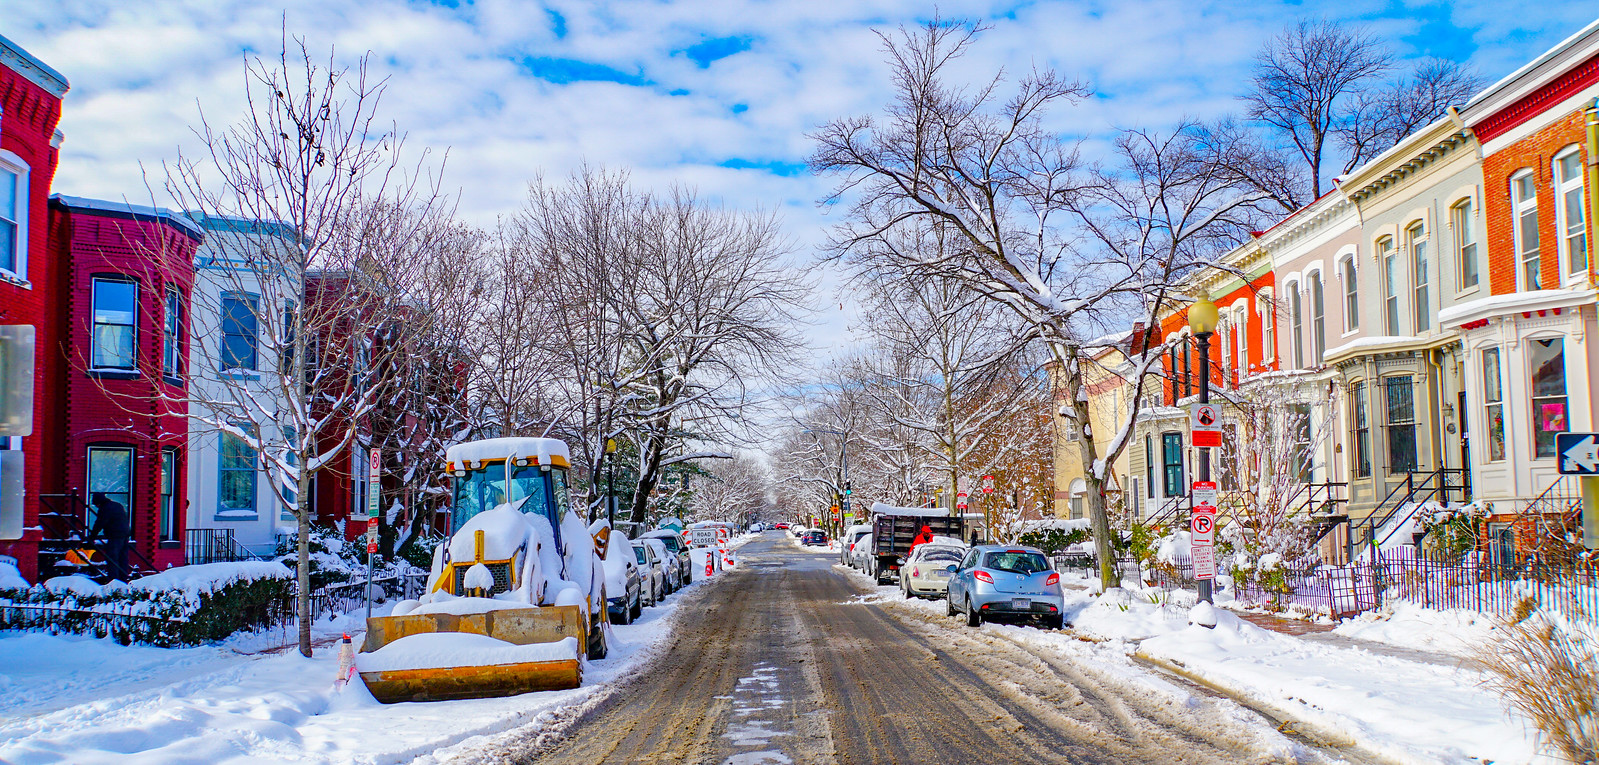 Thanks for Publishing my Photo, in Expect More Snow Tonight, And Possibly Slush This Weekend | DCist